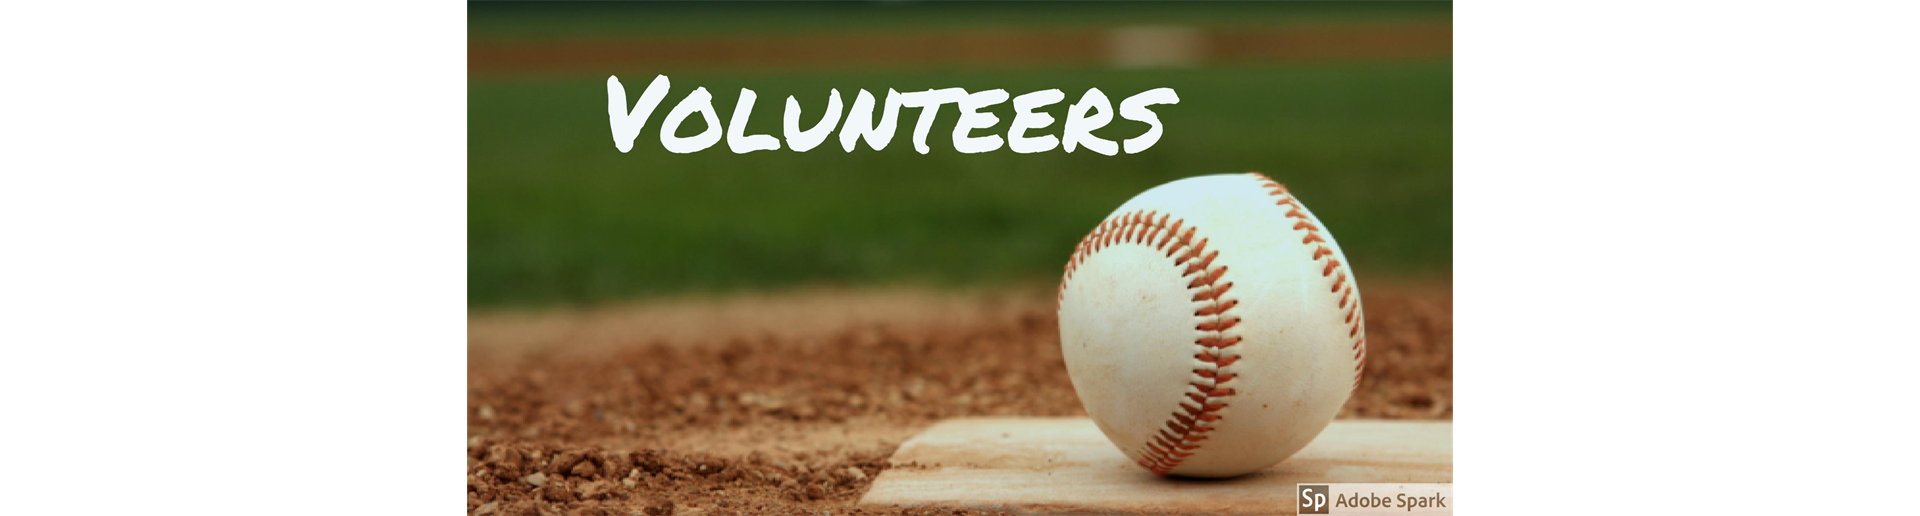 Coaching Volunteers Needed